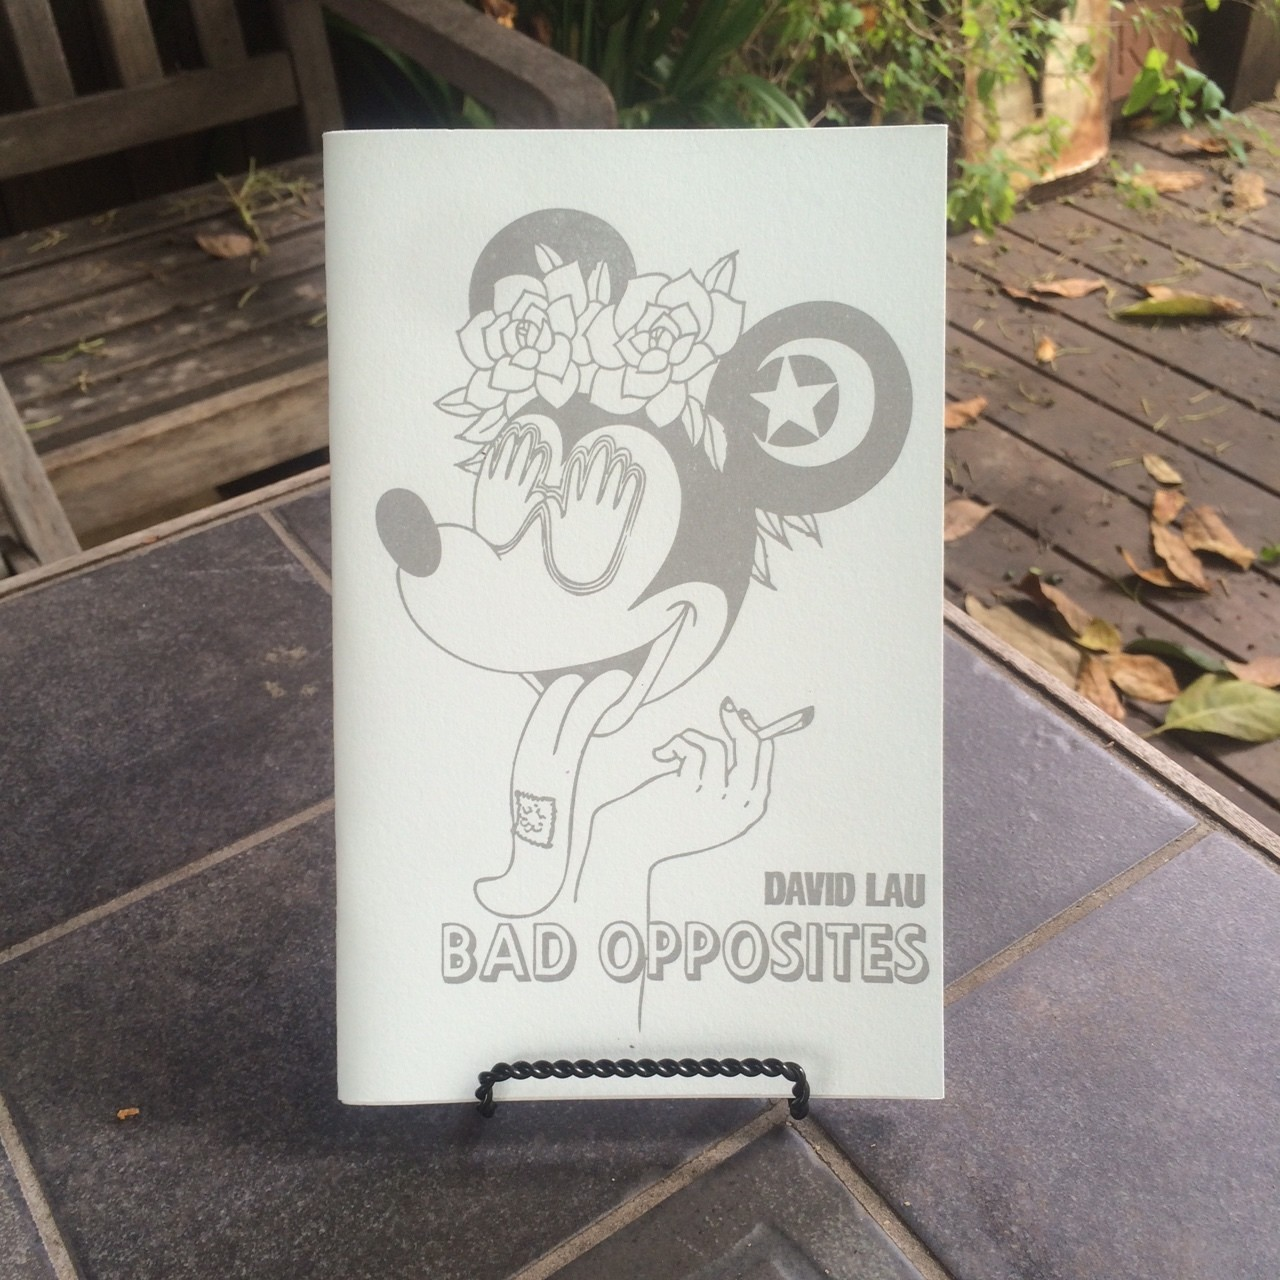 Bad Opposites, by David Lau